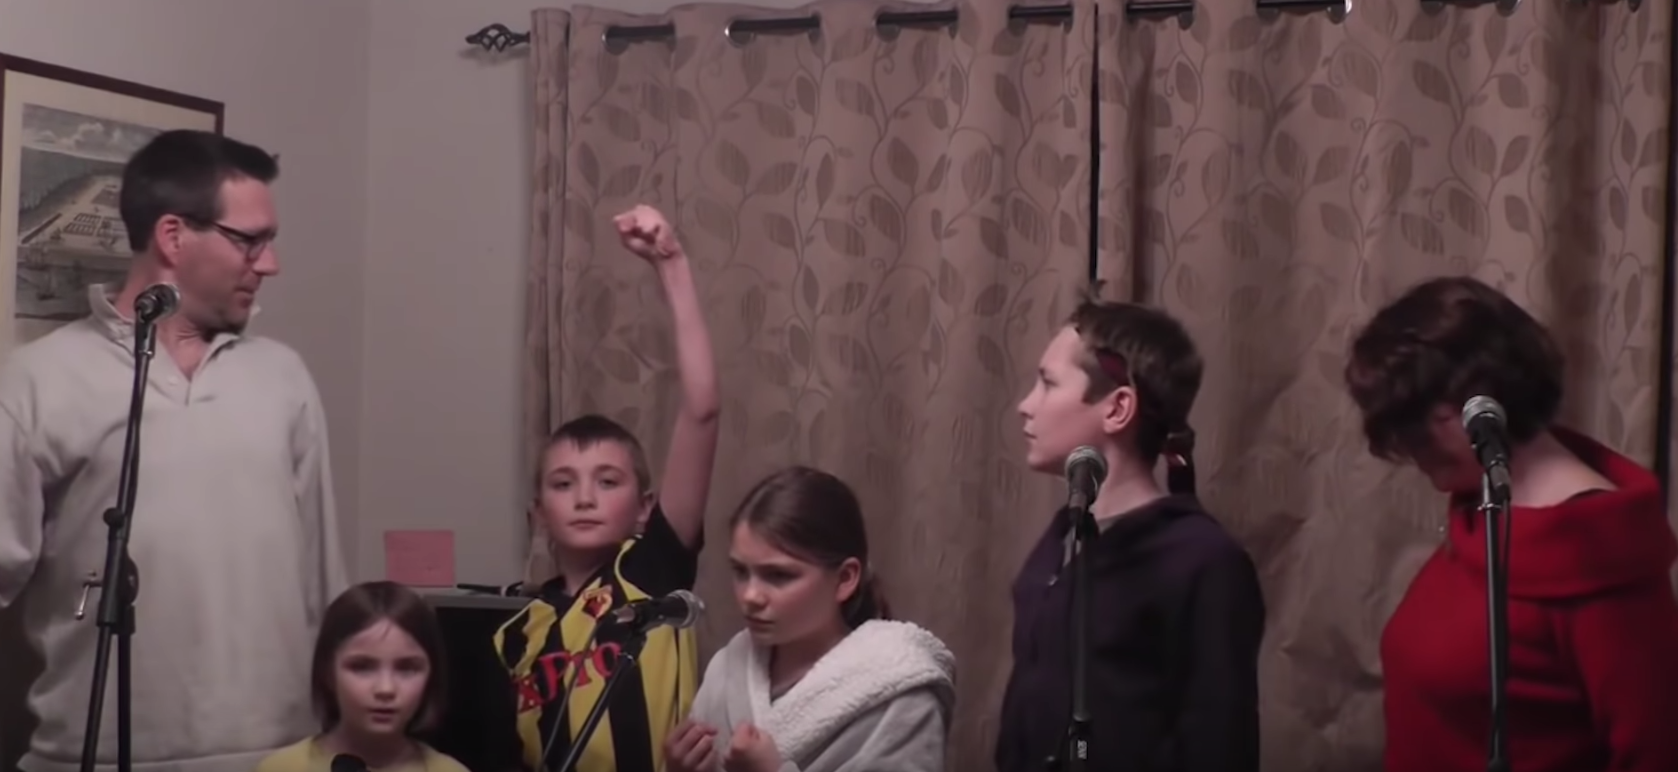 "Watch The Marsh Family's Viral Version Of The Les Misérables Song ""One More Day"""